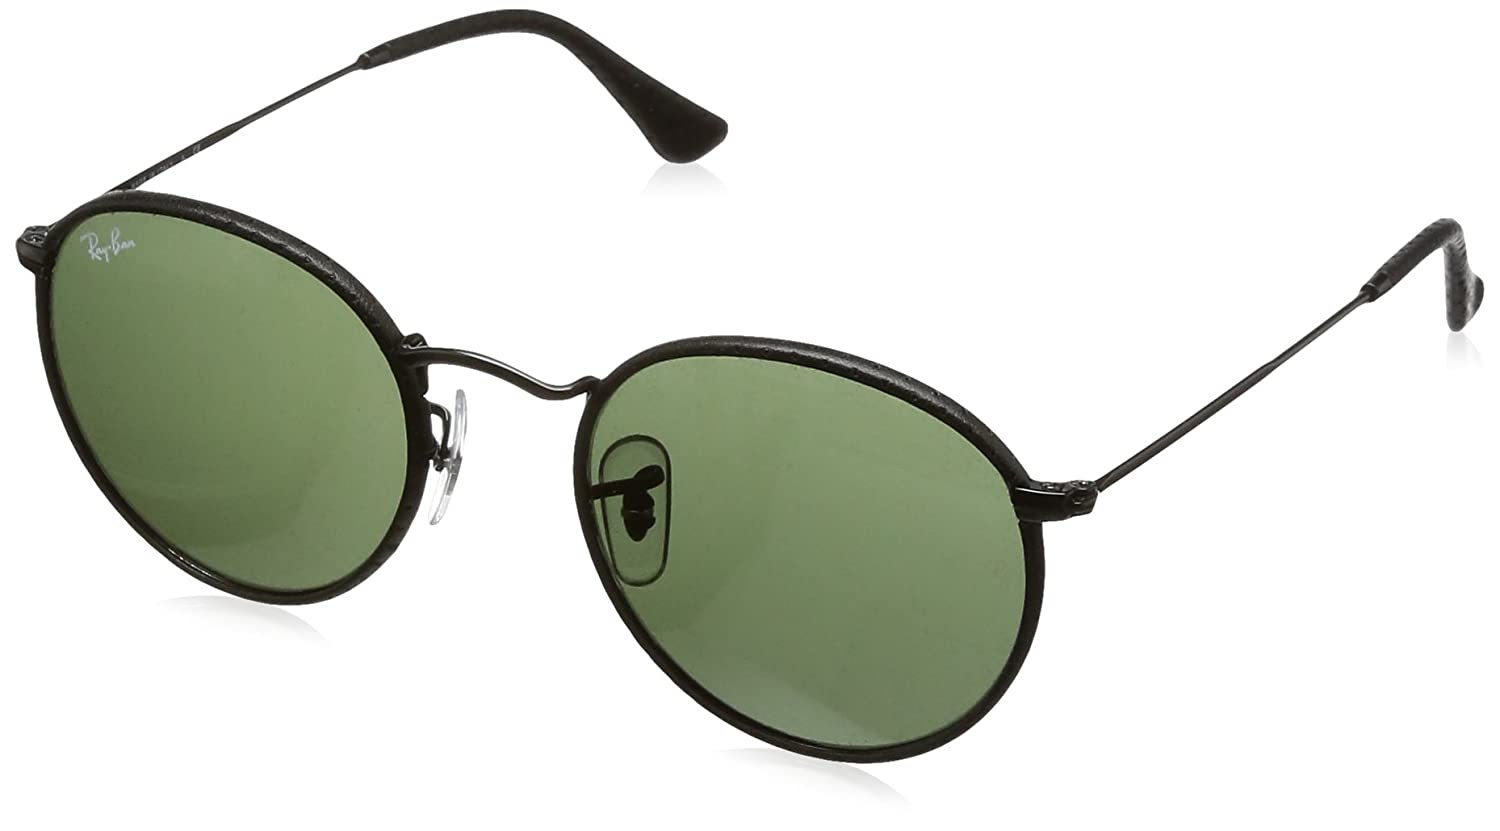 752c3c7da5 Amazon.com  Ray-Ban Men s Round Craft Sunglasses